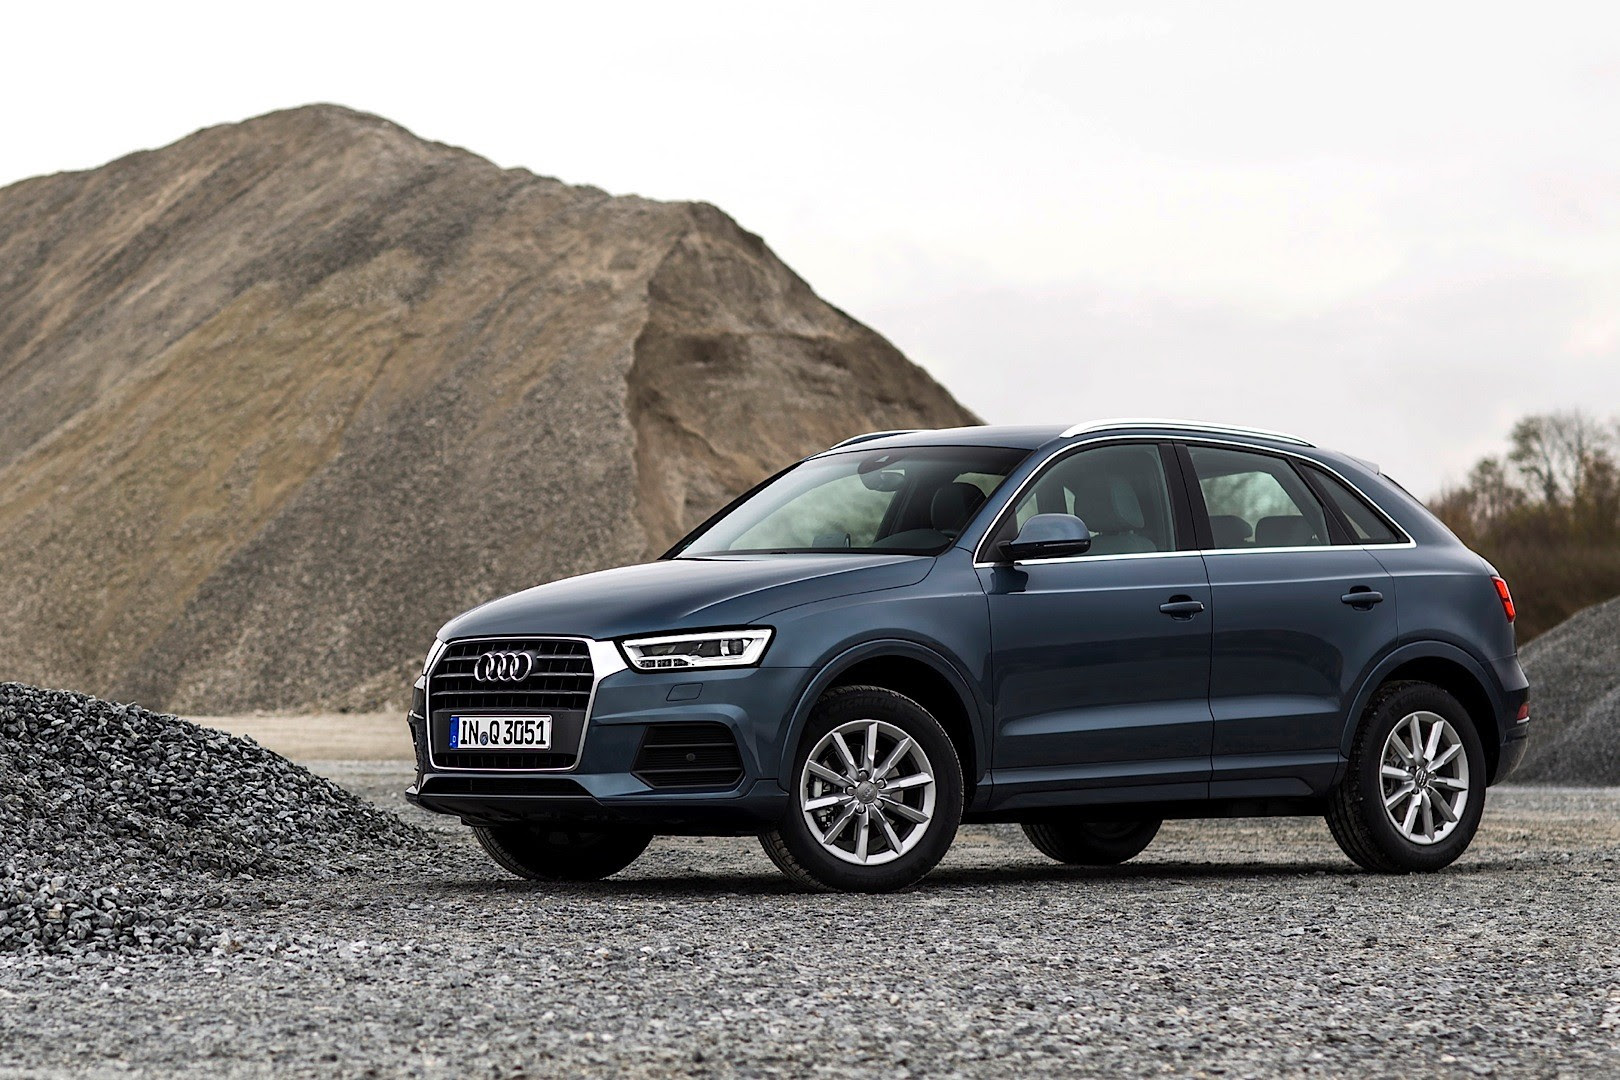 Audi Shares New 2015 Q3 and RS Q3 Photos: Fresh Colors, New Trim ...